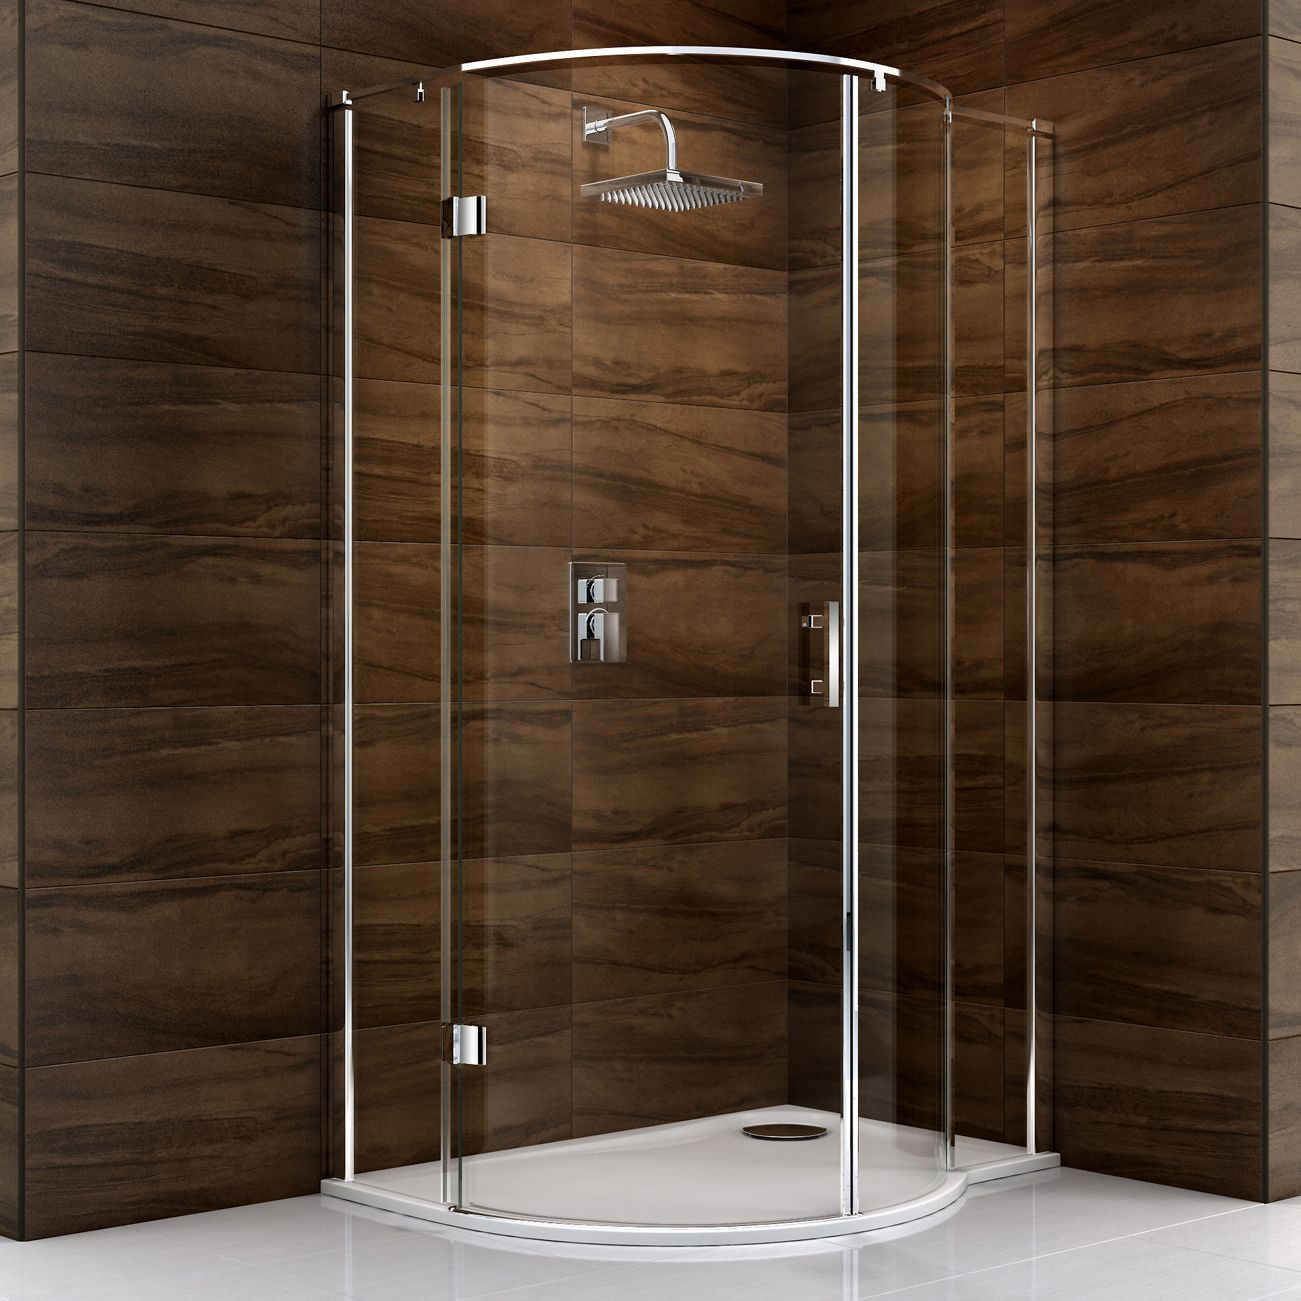 Awesome D Shaped Shower Tray Photos - Bathtubs For Small Bathrooms ...